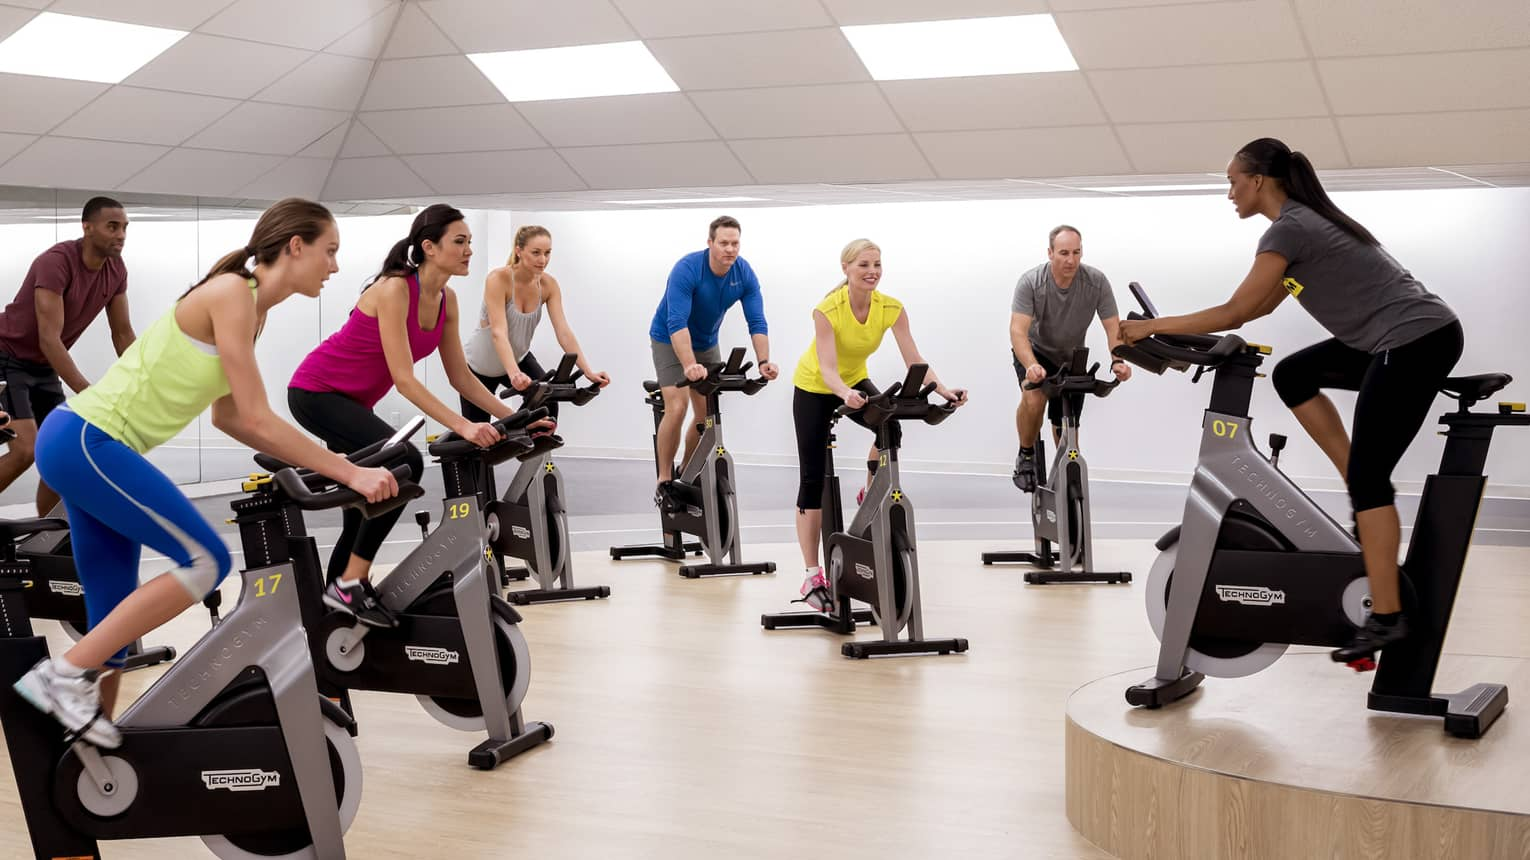 People workout on cardio spin bike machines in Fitness Centre